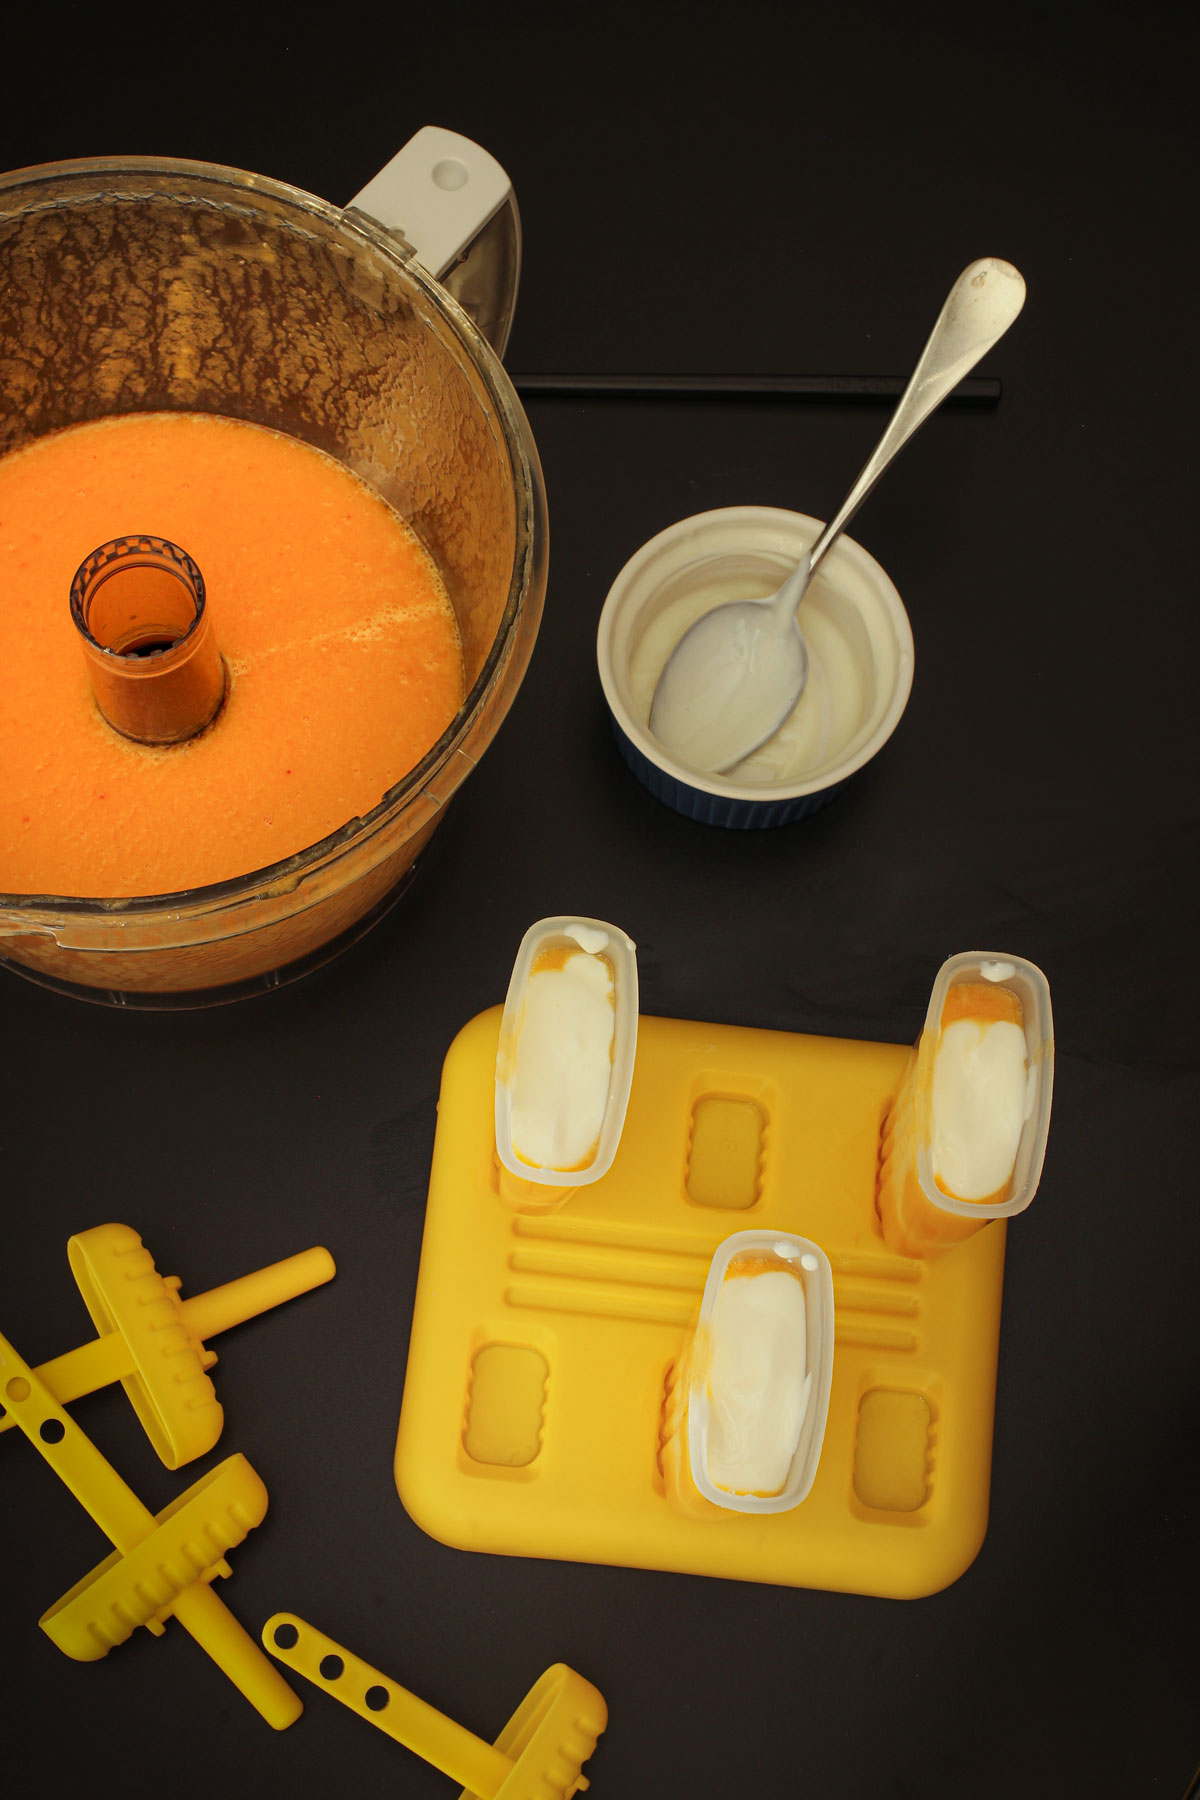 layering yogurt and fruit puree in popsicle molds.